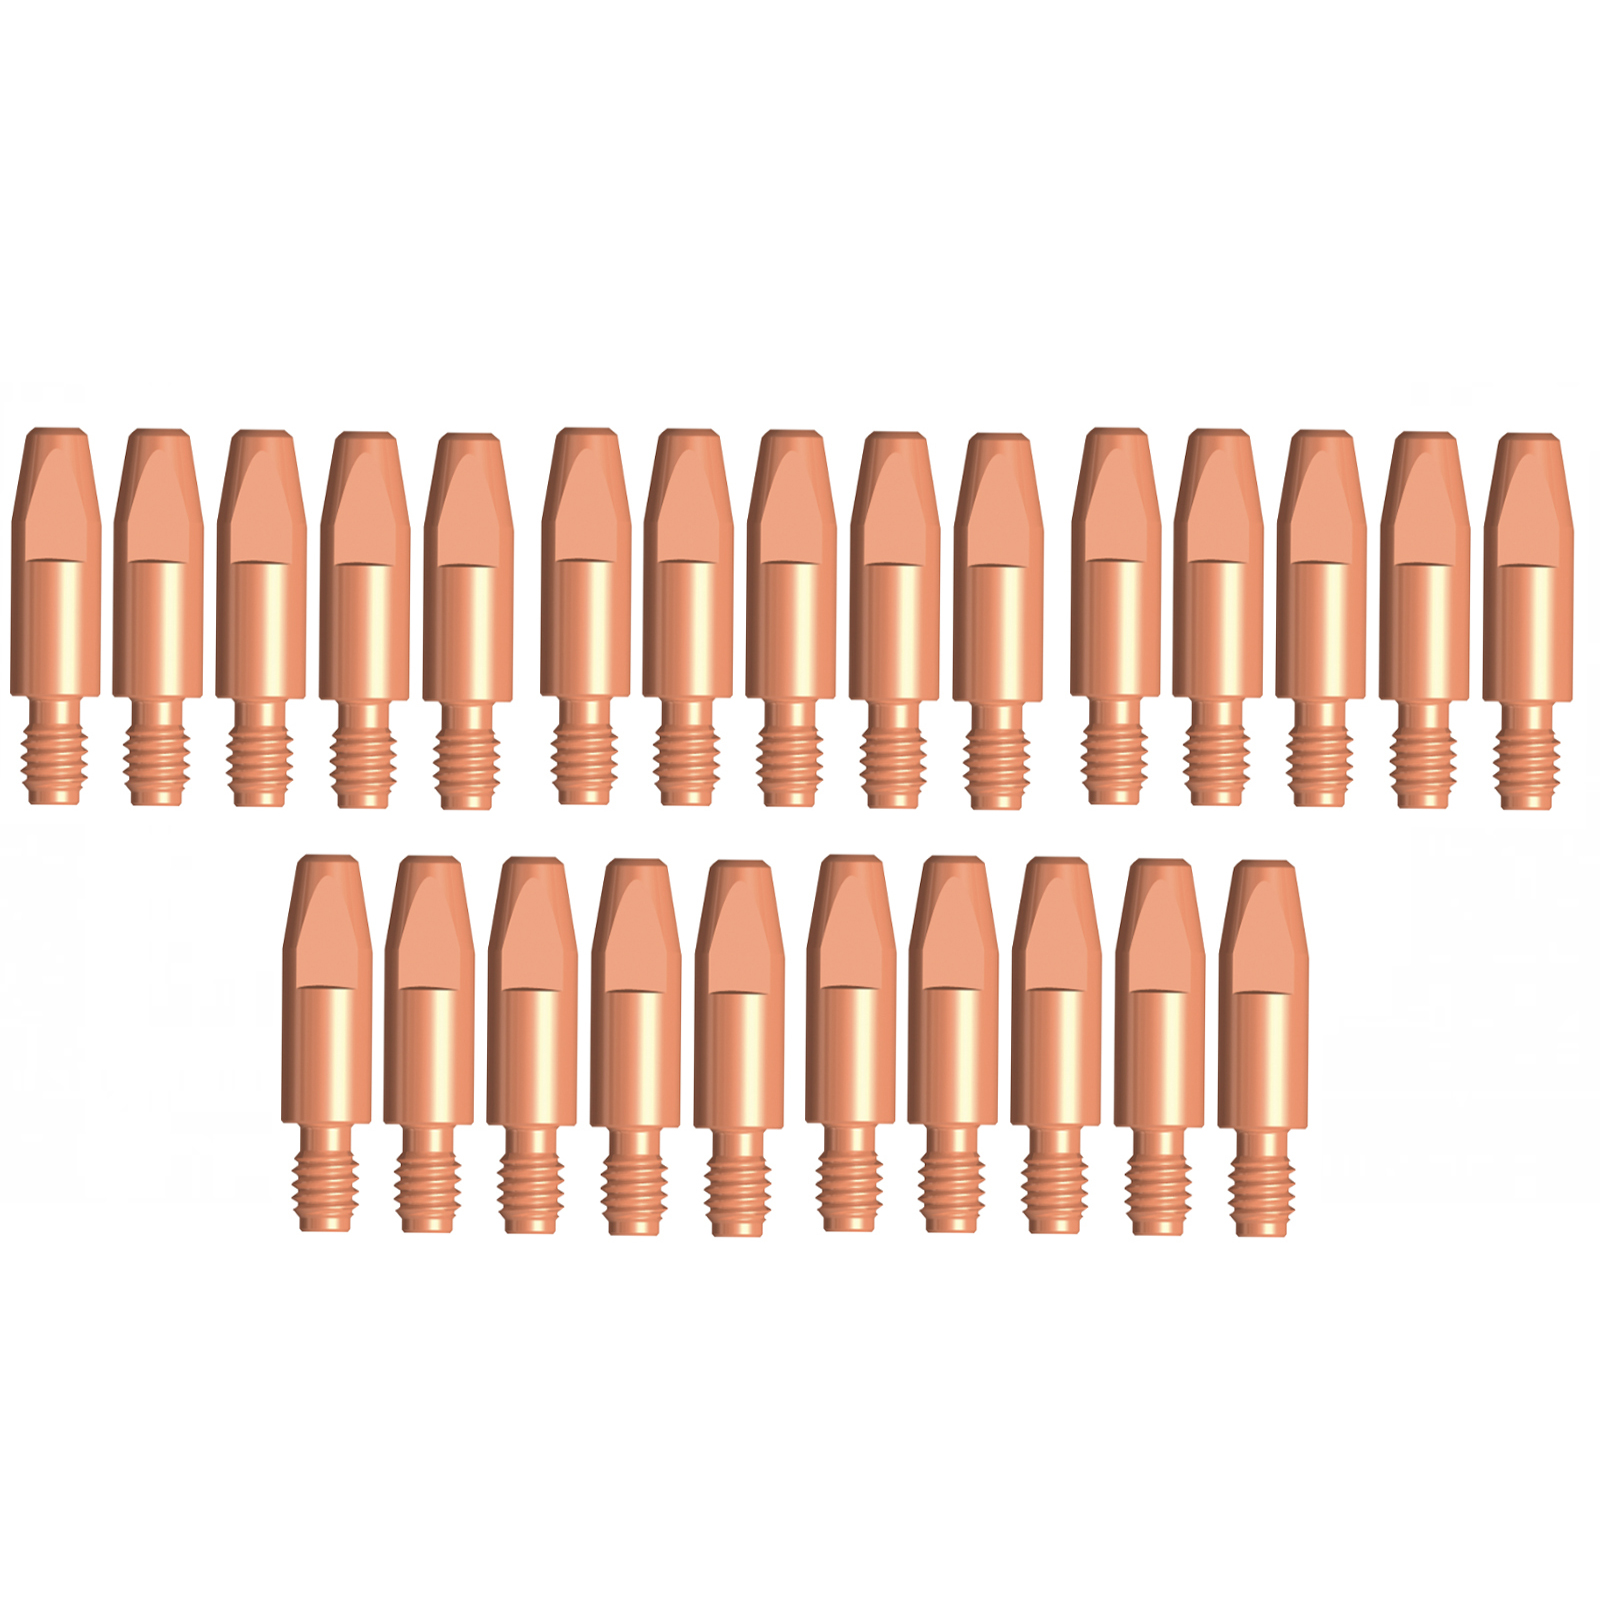 Binzel Style MIG Contact Tips for ALUMINIUM - 2.4mm - 25 pack - M8 x 10mm x 2.4mm